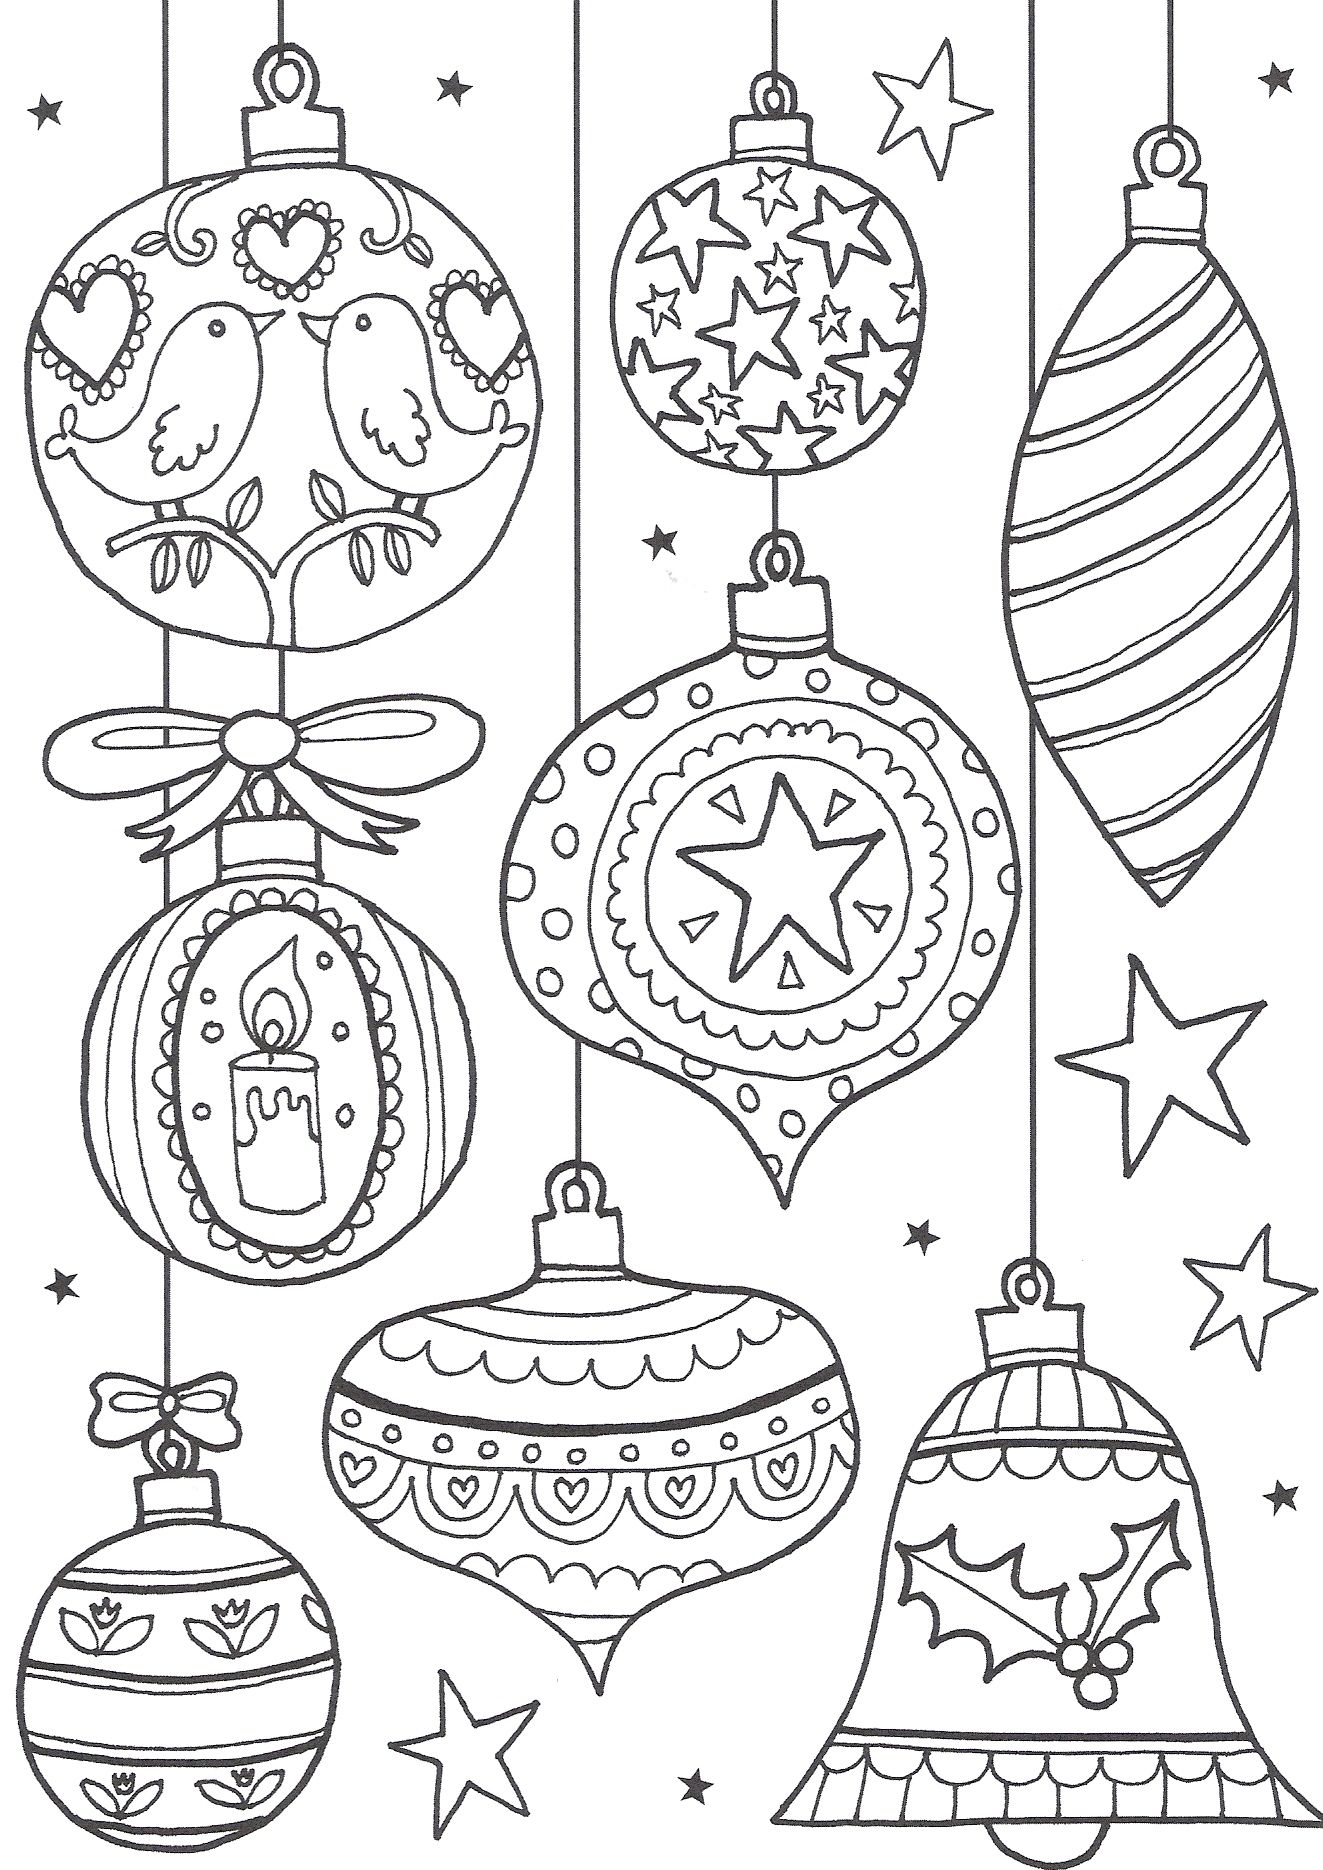 Christmas Coloring Pages Free Printable With Colouring For Adults The Ultimate Roundup